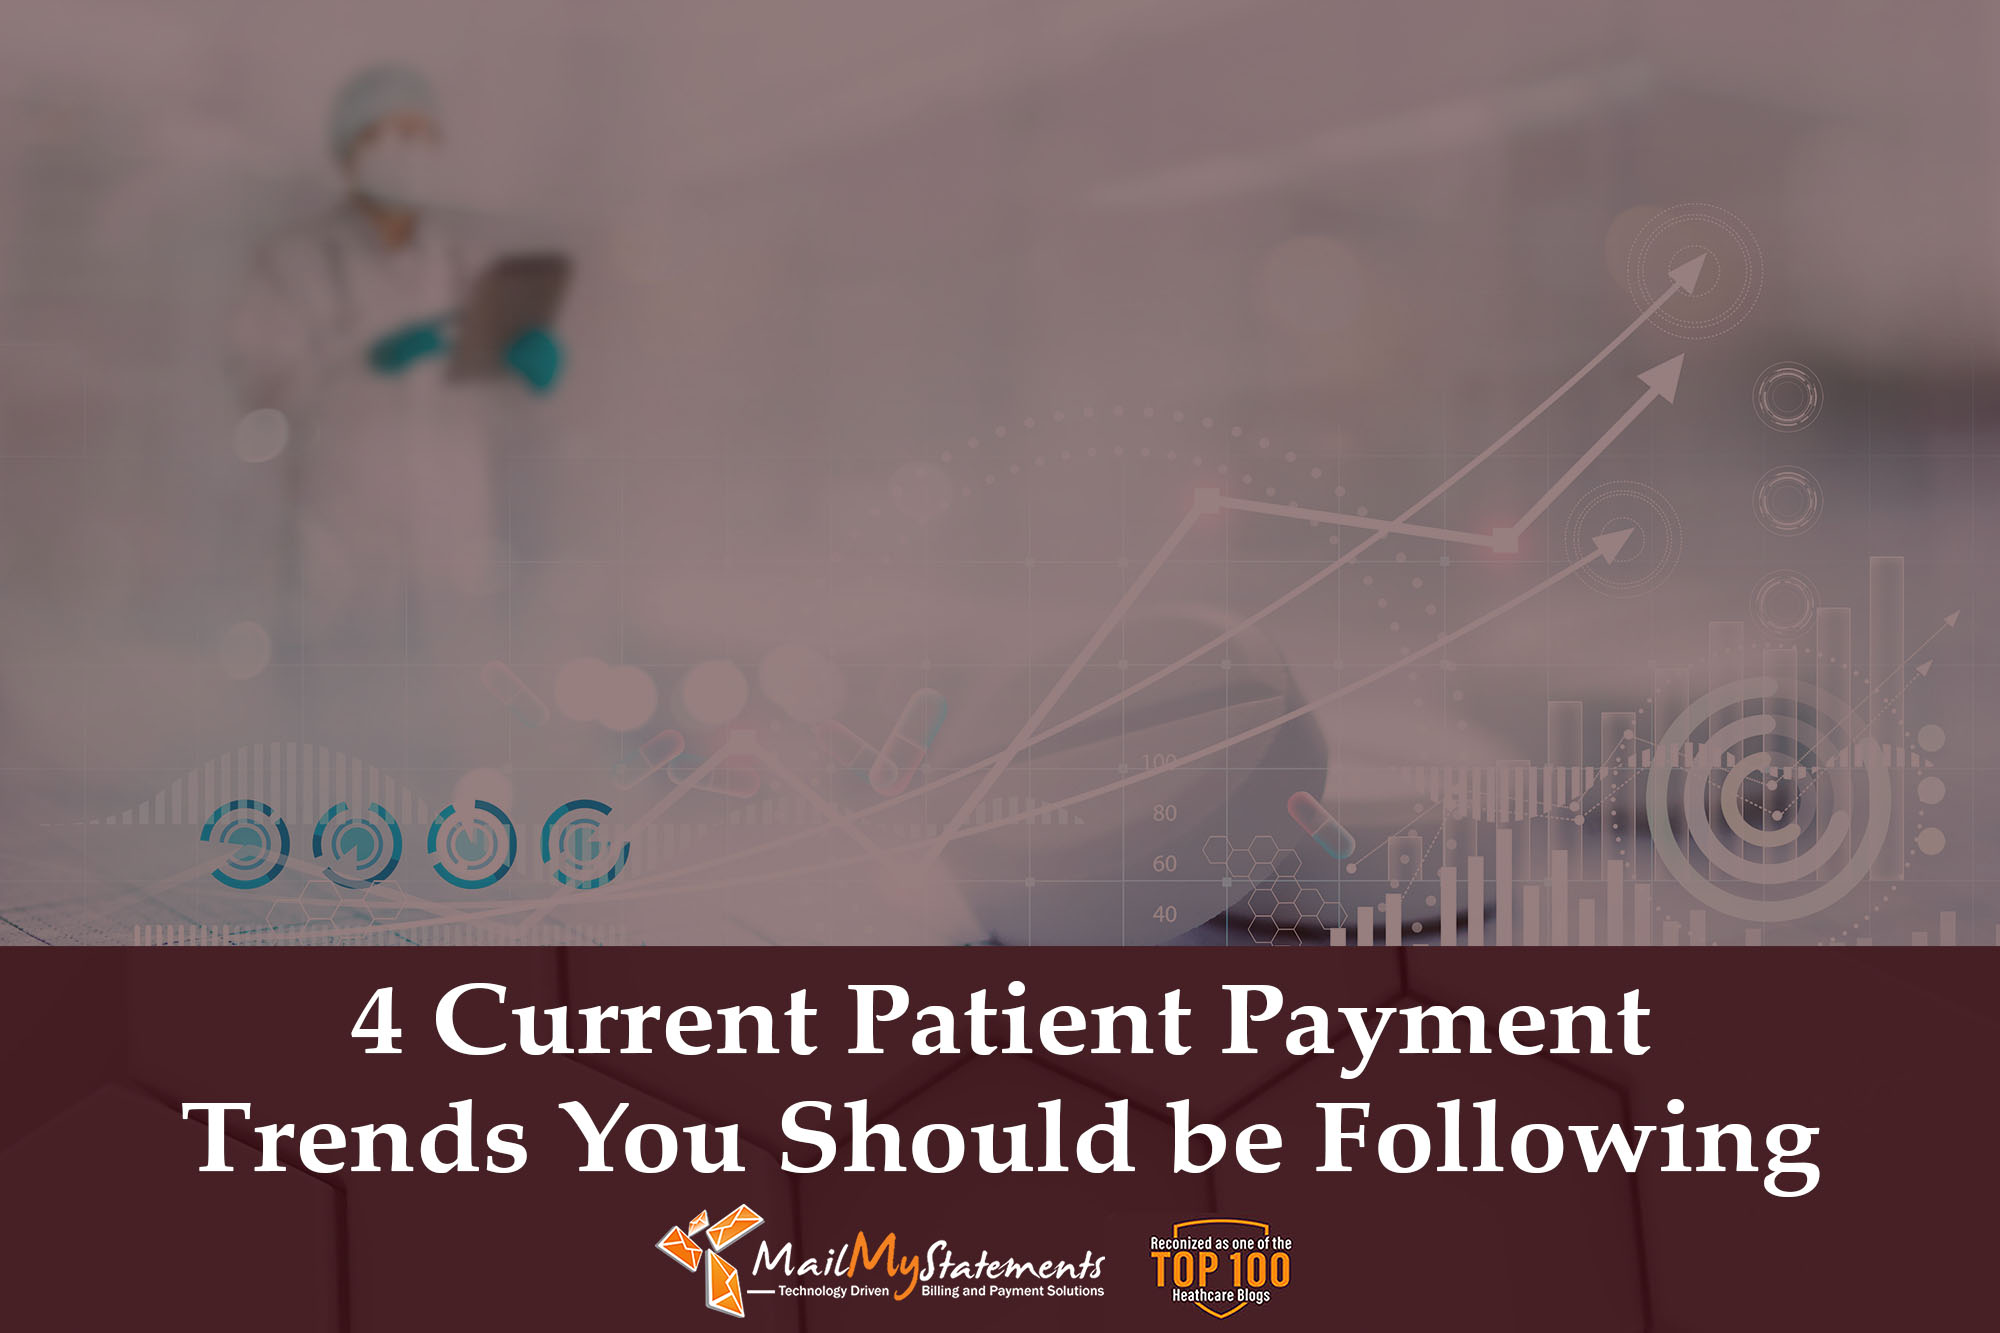 4 Current Patient Payment Trends You Should be Following